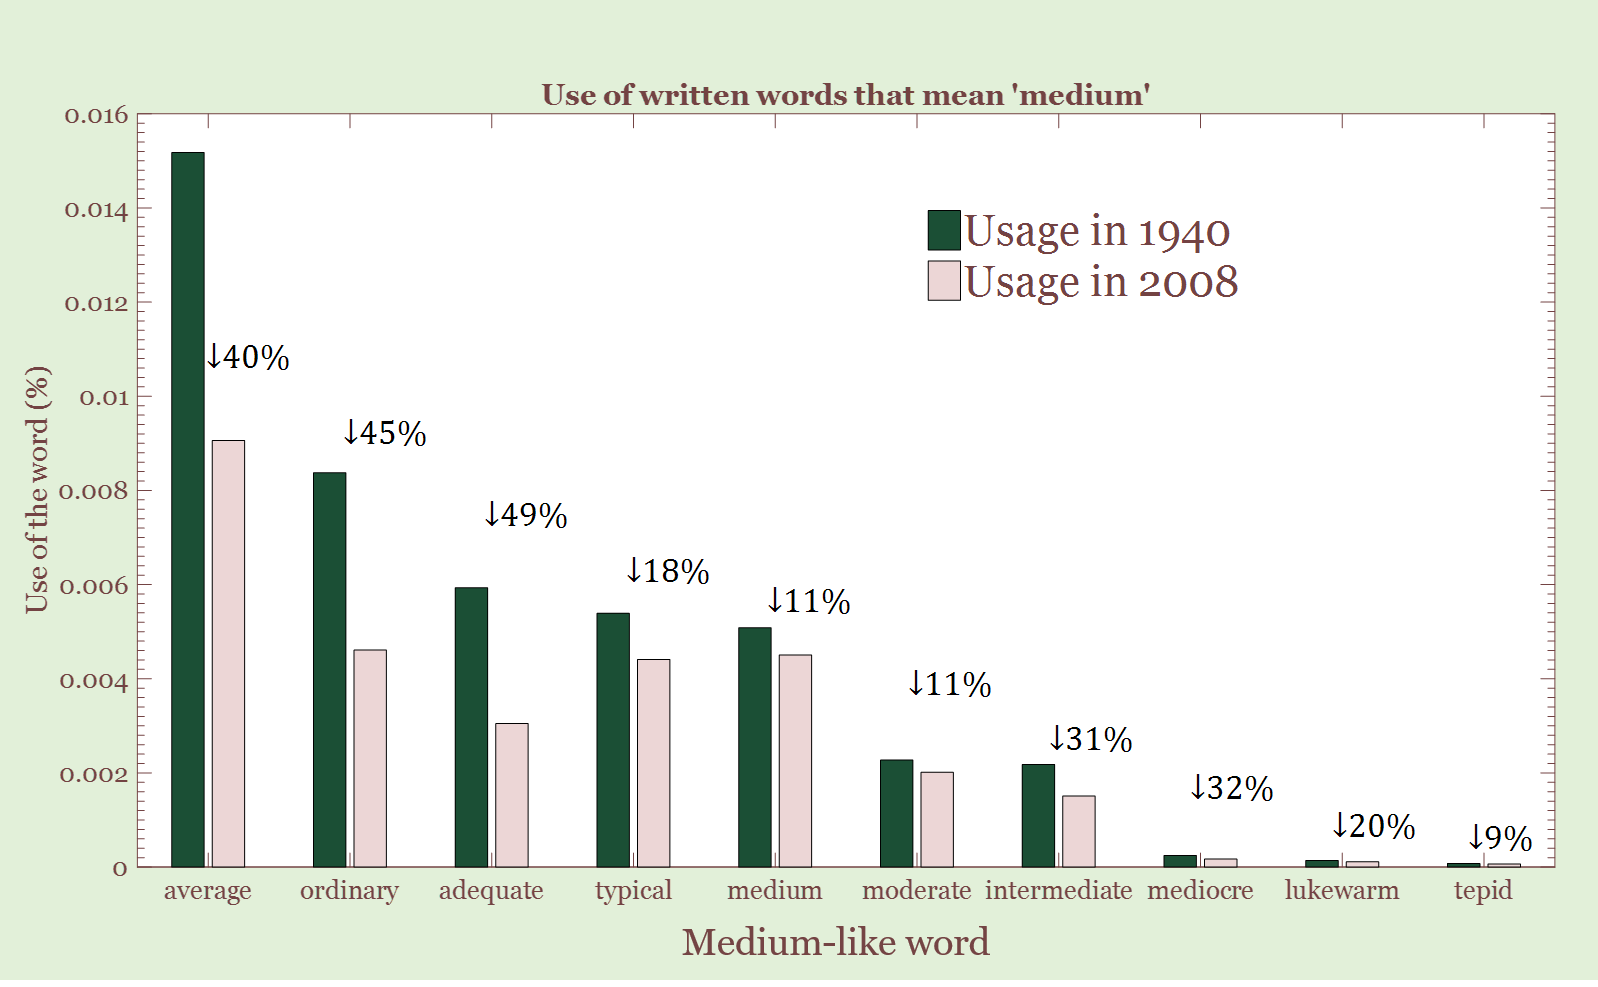 Usage of medium-meaning words in 1940 compared to 2008. Data from  Google Ngram